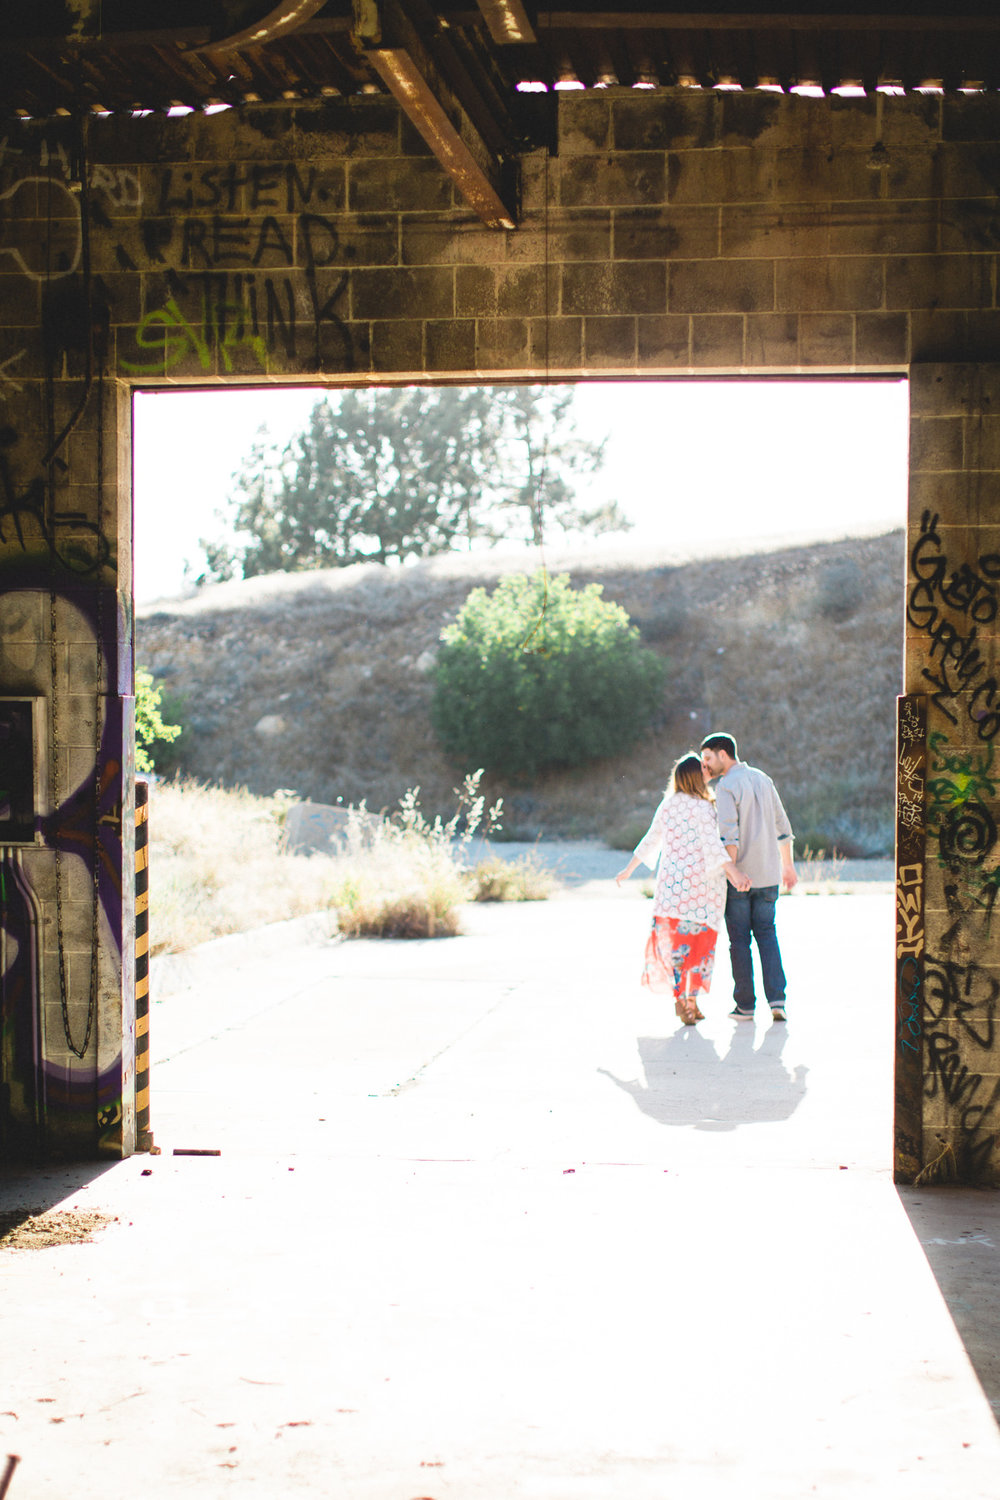 the-light-and-glass-wedding-engagement-photography-20160712-18-26-1.jpg